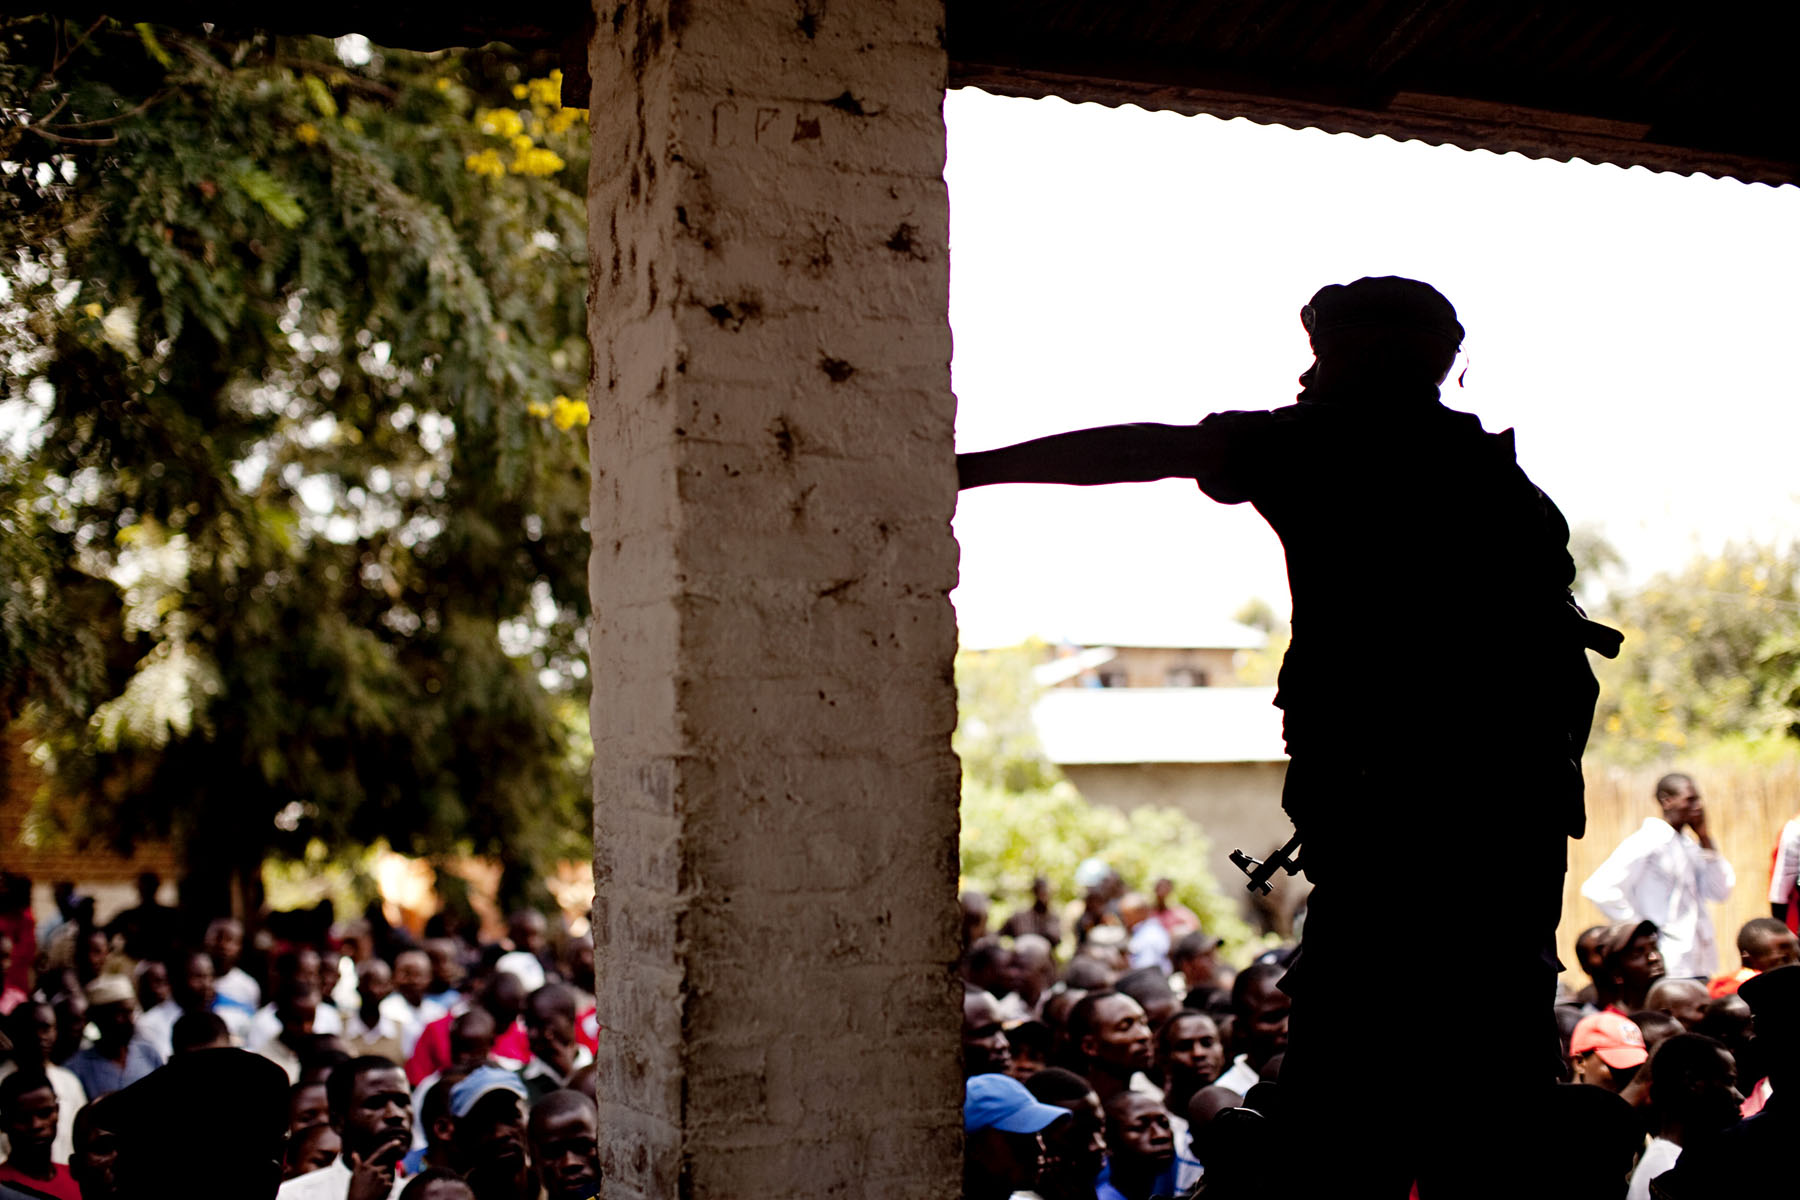 A Congolese police officer stands guard over huge crowds that turned out to watch the proceedings. Despite the blazing sun, hundreds forewent their typical duties in order to observe the trail.